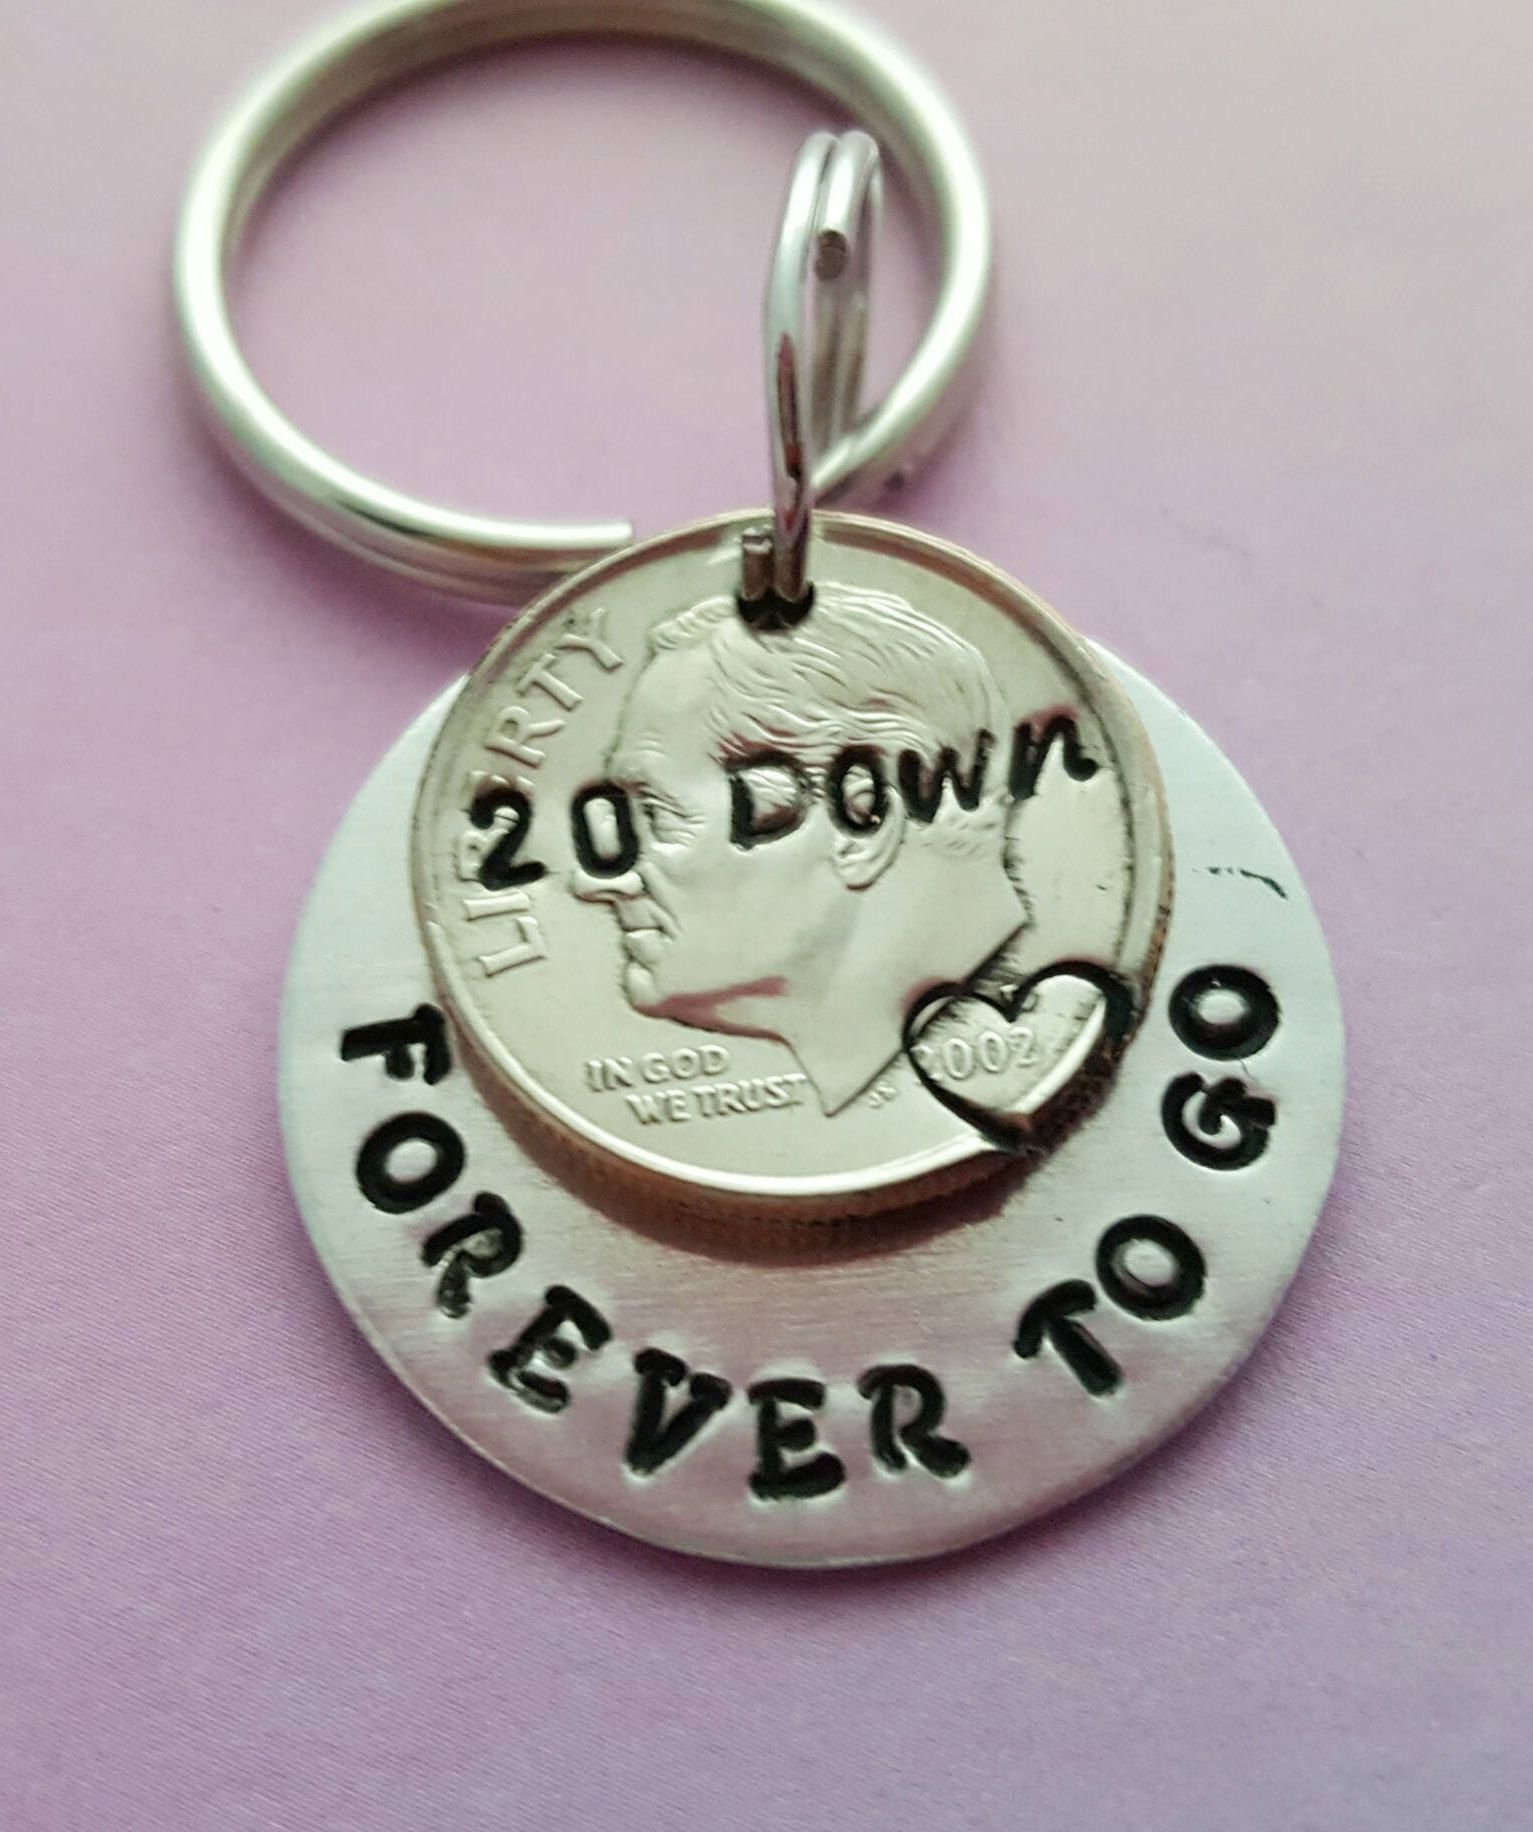 20th anniversary gift idea, 20 year wedding anniversary keychain